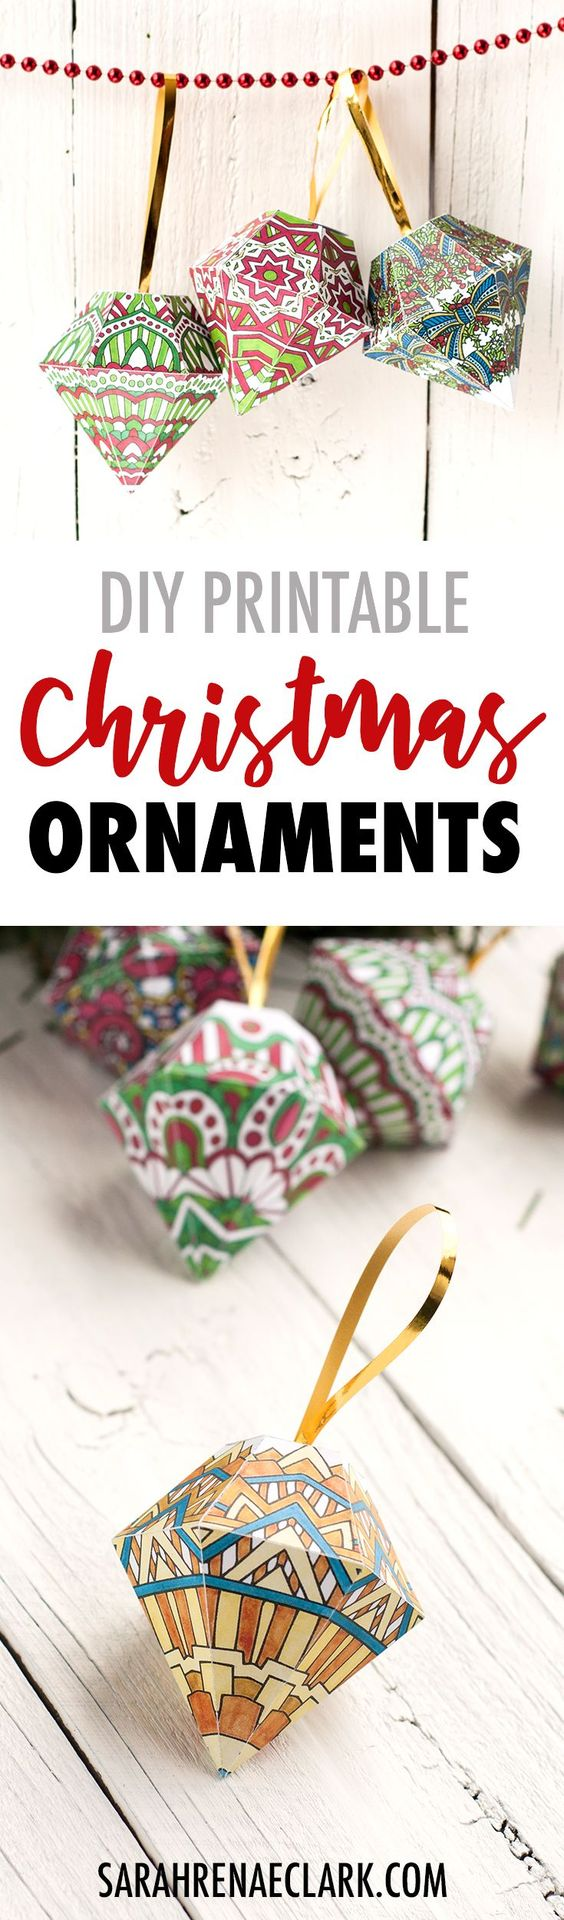 Color and make your own Christmas tree ornaments from paper with this set of 10 fun DIY Christmas printable templates! | Find more Christmas crafts at www.sarahrenaeclark.com/christmas #christmascraft #diychristmas #printables